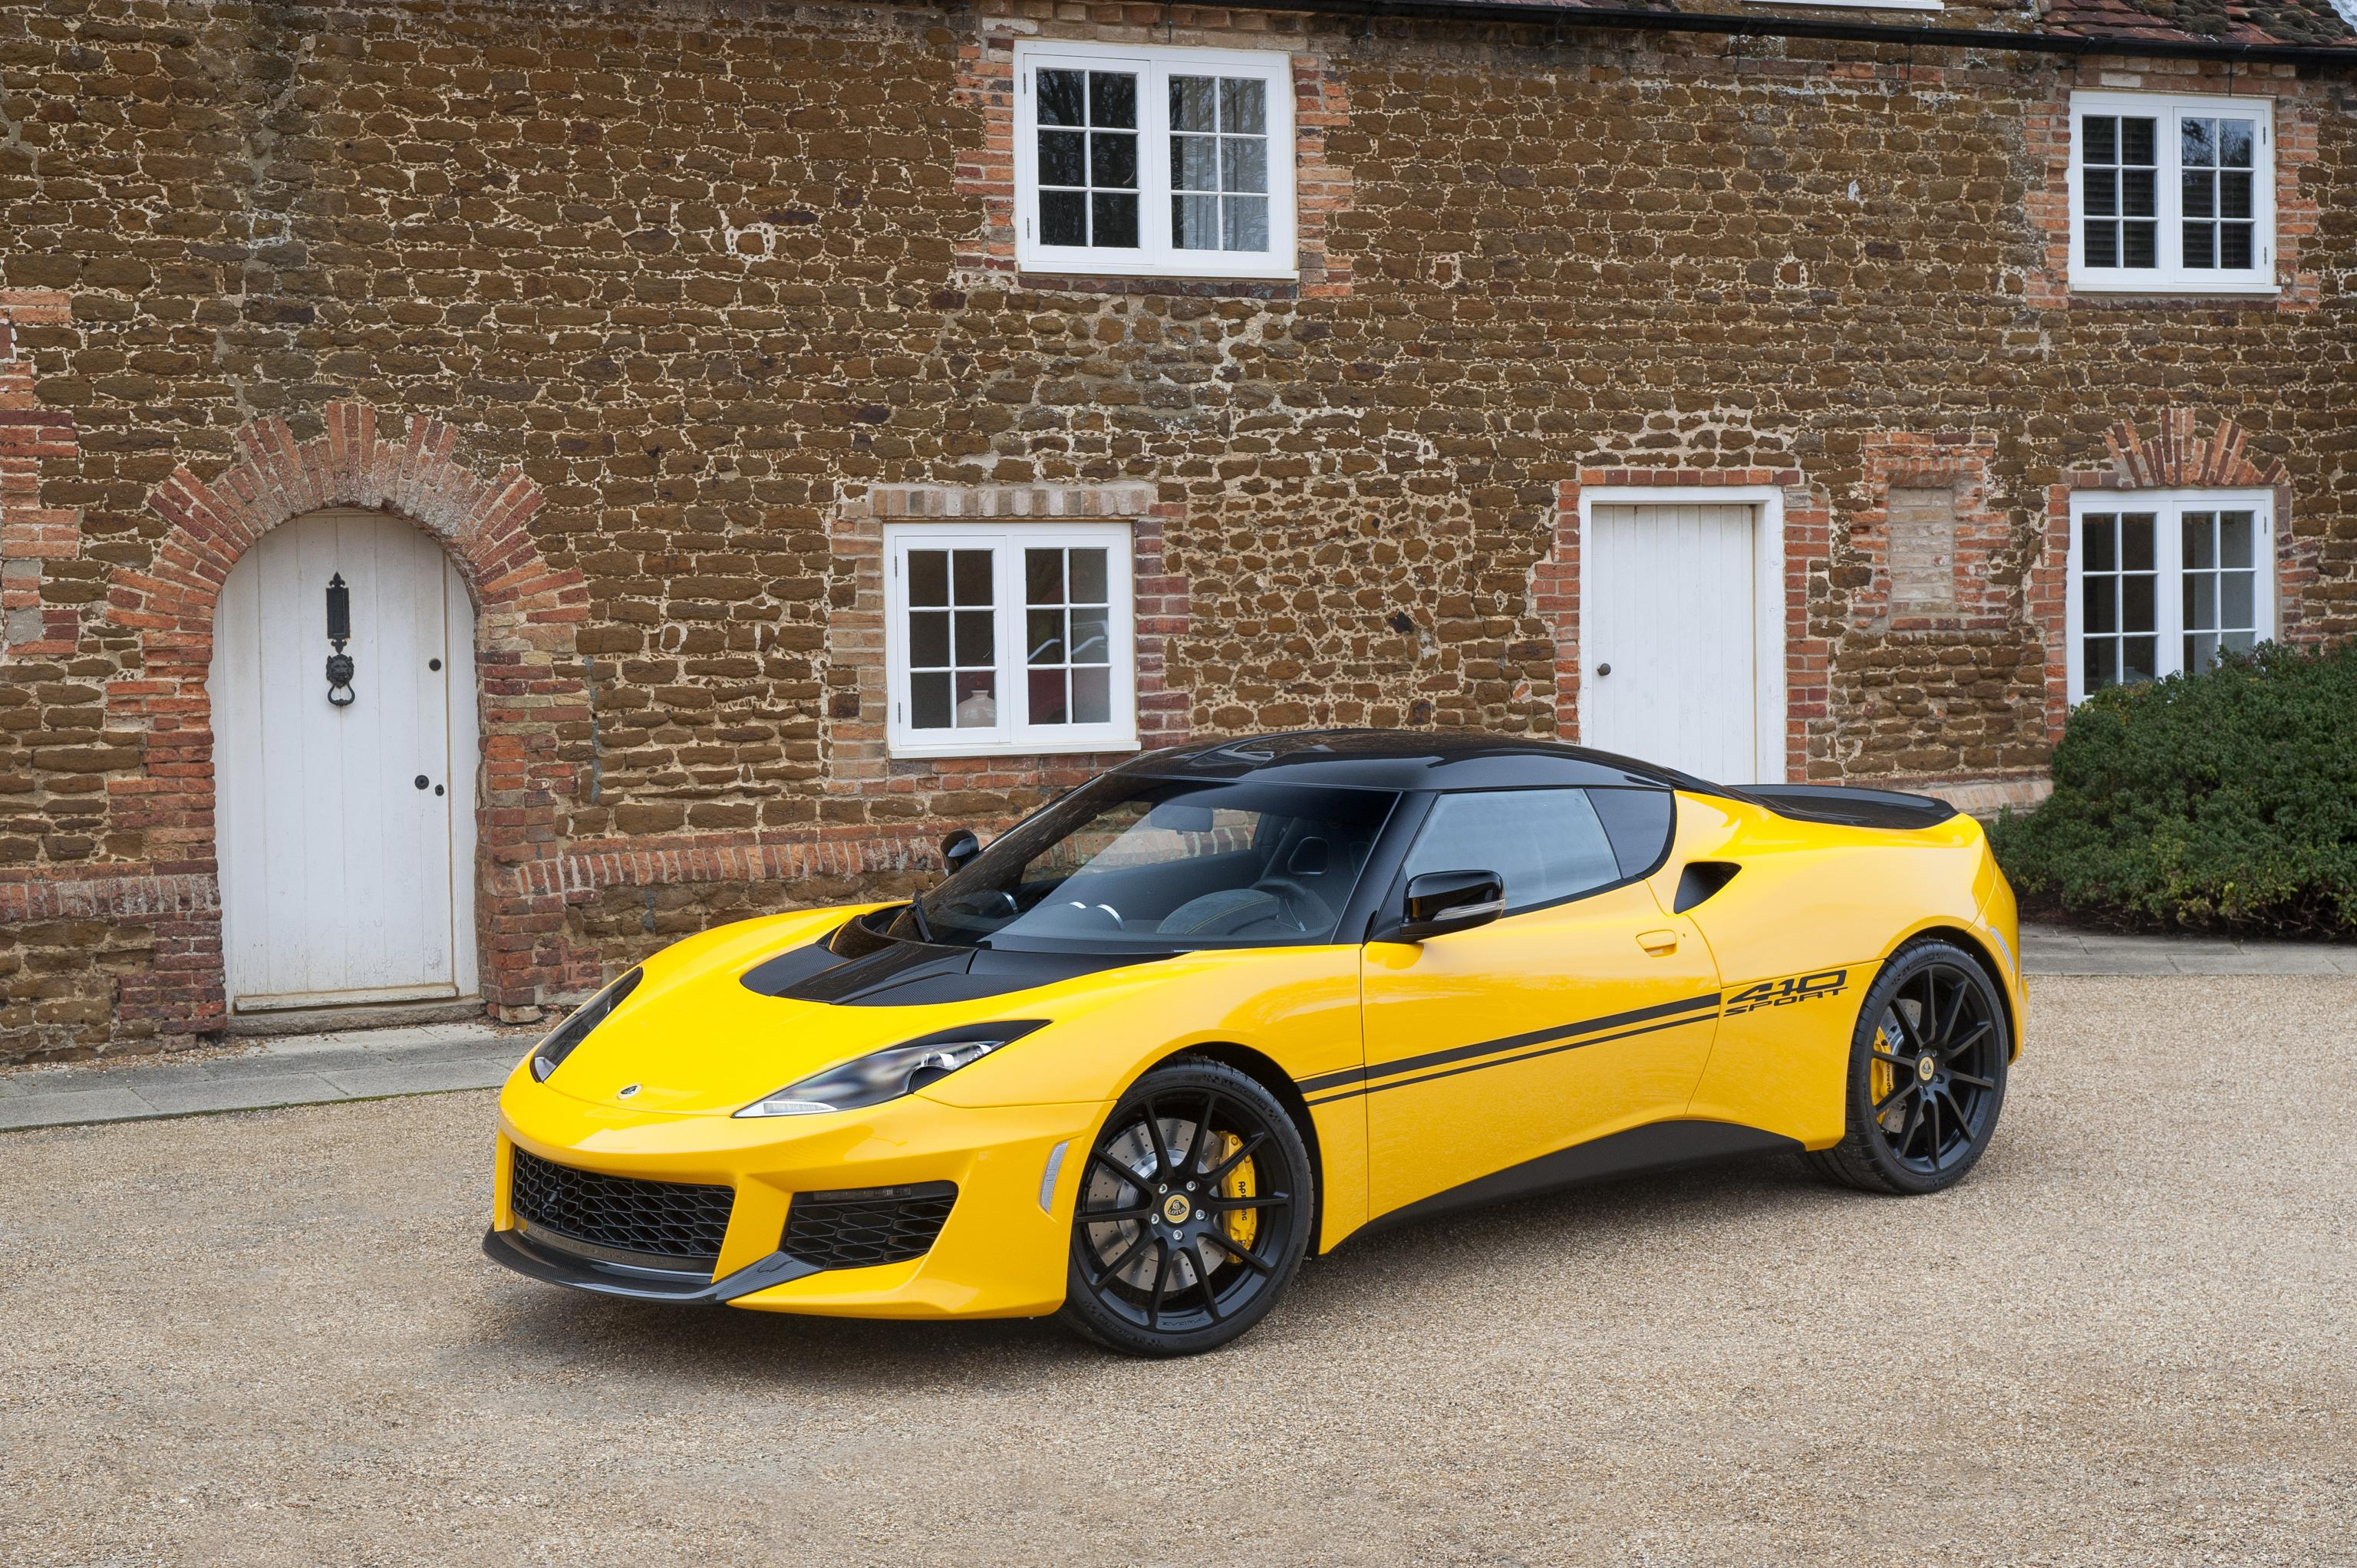 https://s1.cdn.autoevolution.com/images/news/lotus-evora-sport-410-production-limited-to-150-cars-per-year-105027_1.jpg